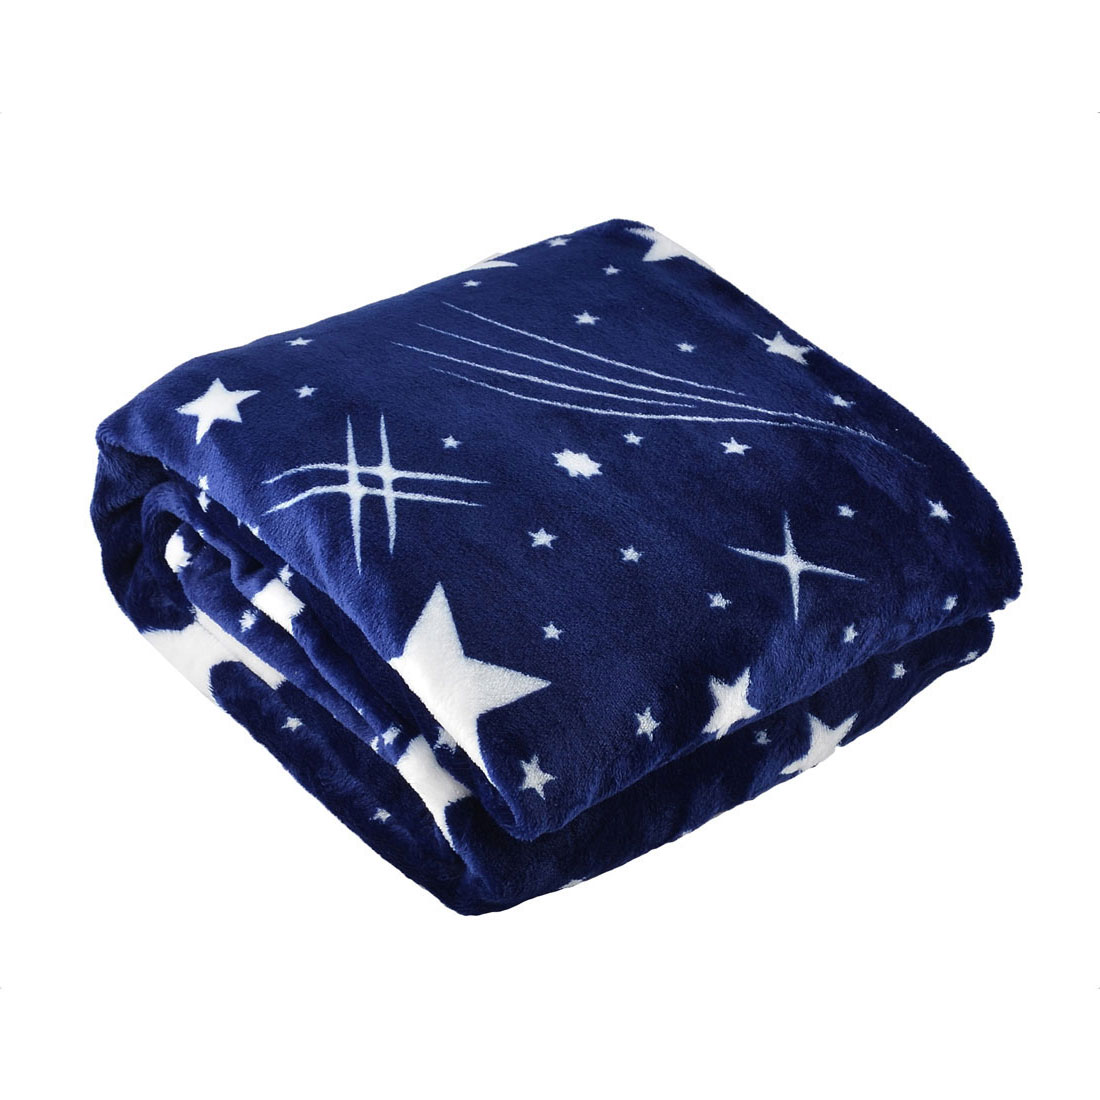 120 x 200cm Single Size Home Bedroom Warm Throw Blanket Rug Plush Fleece Bed Quilt Sofa Soft Star Pattern Dark Blue